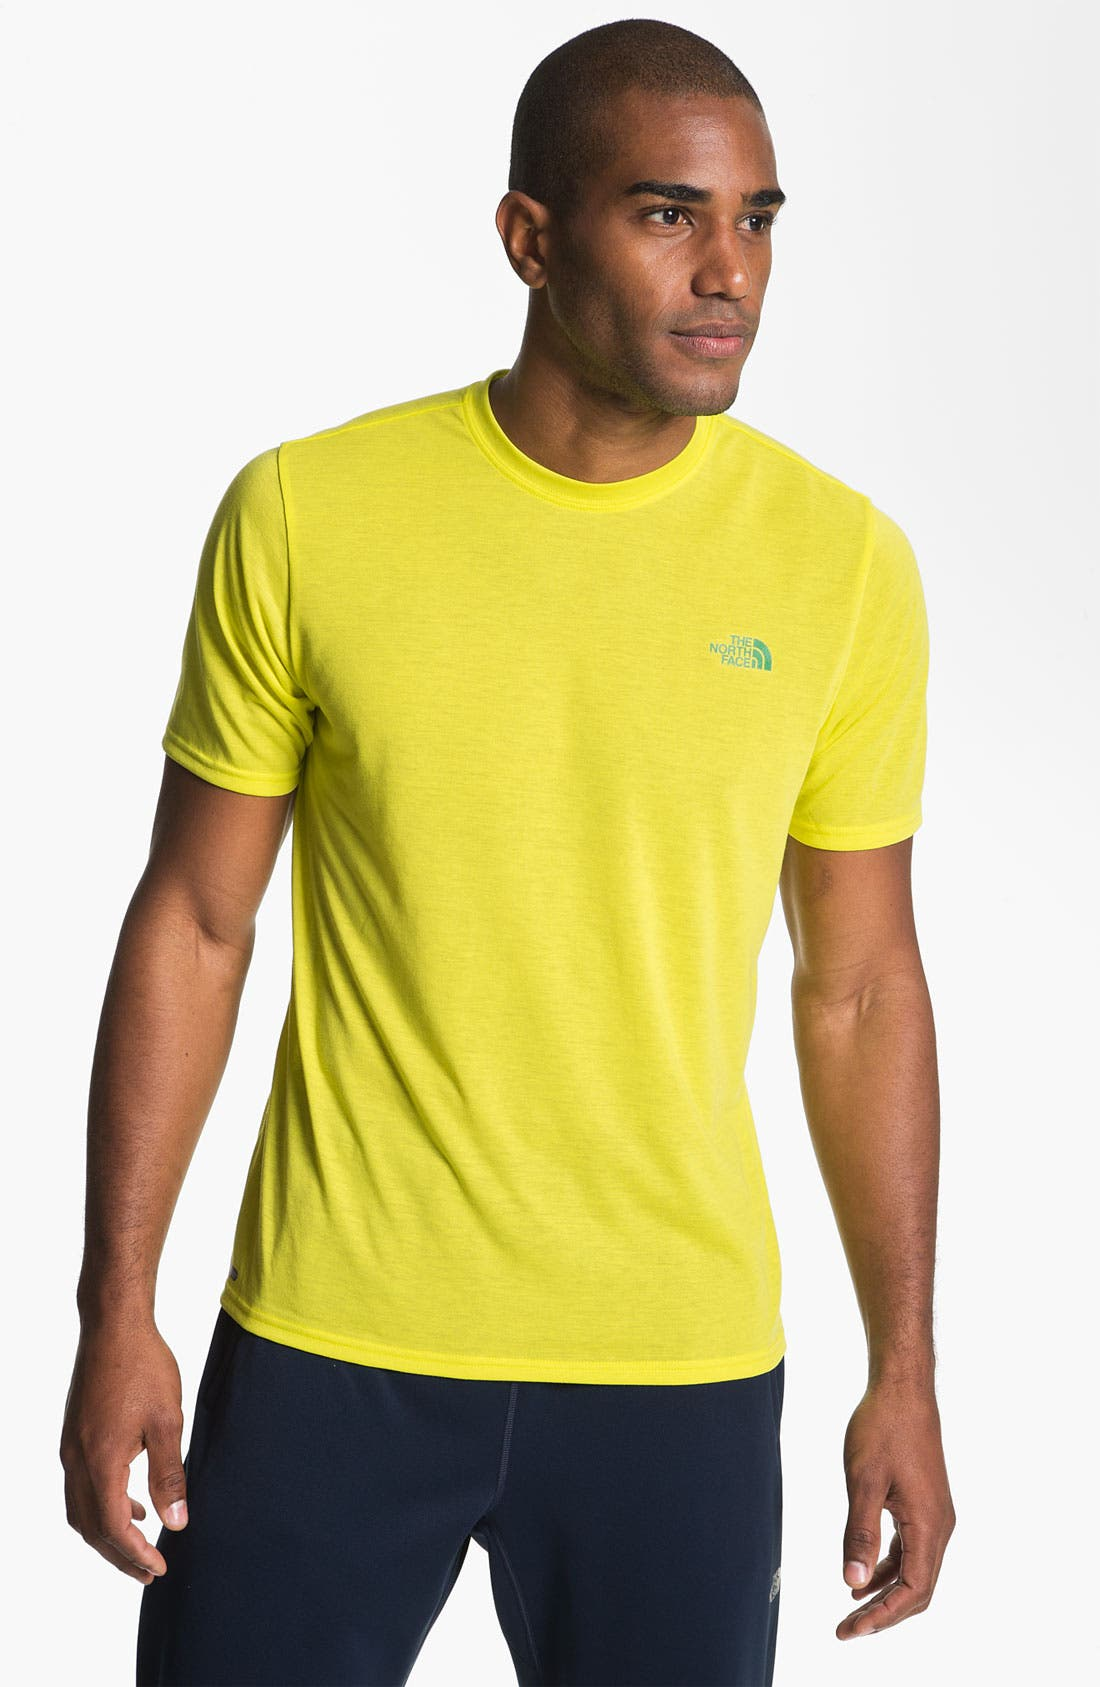 Alternate Image 1 Selected - The North Face 'Reaxion' T-Shirt